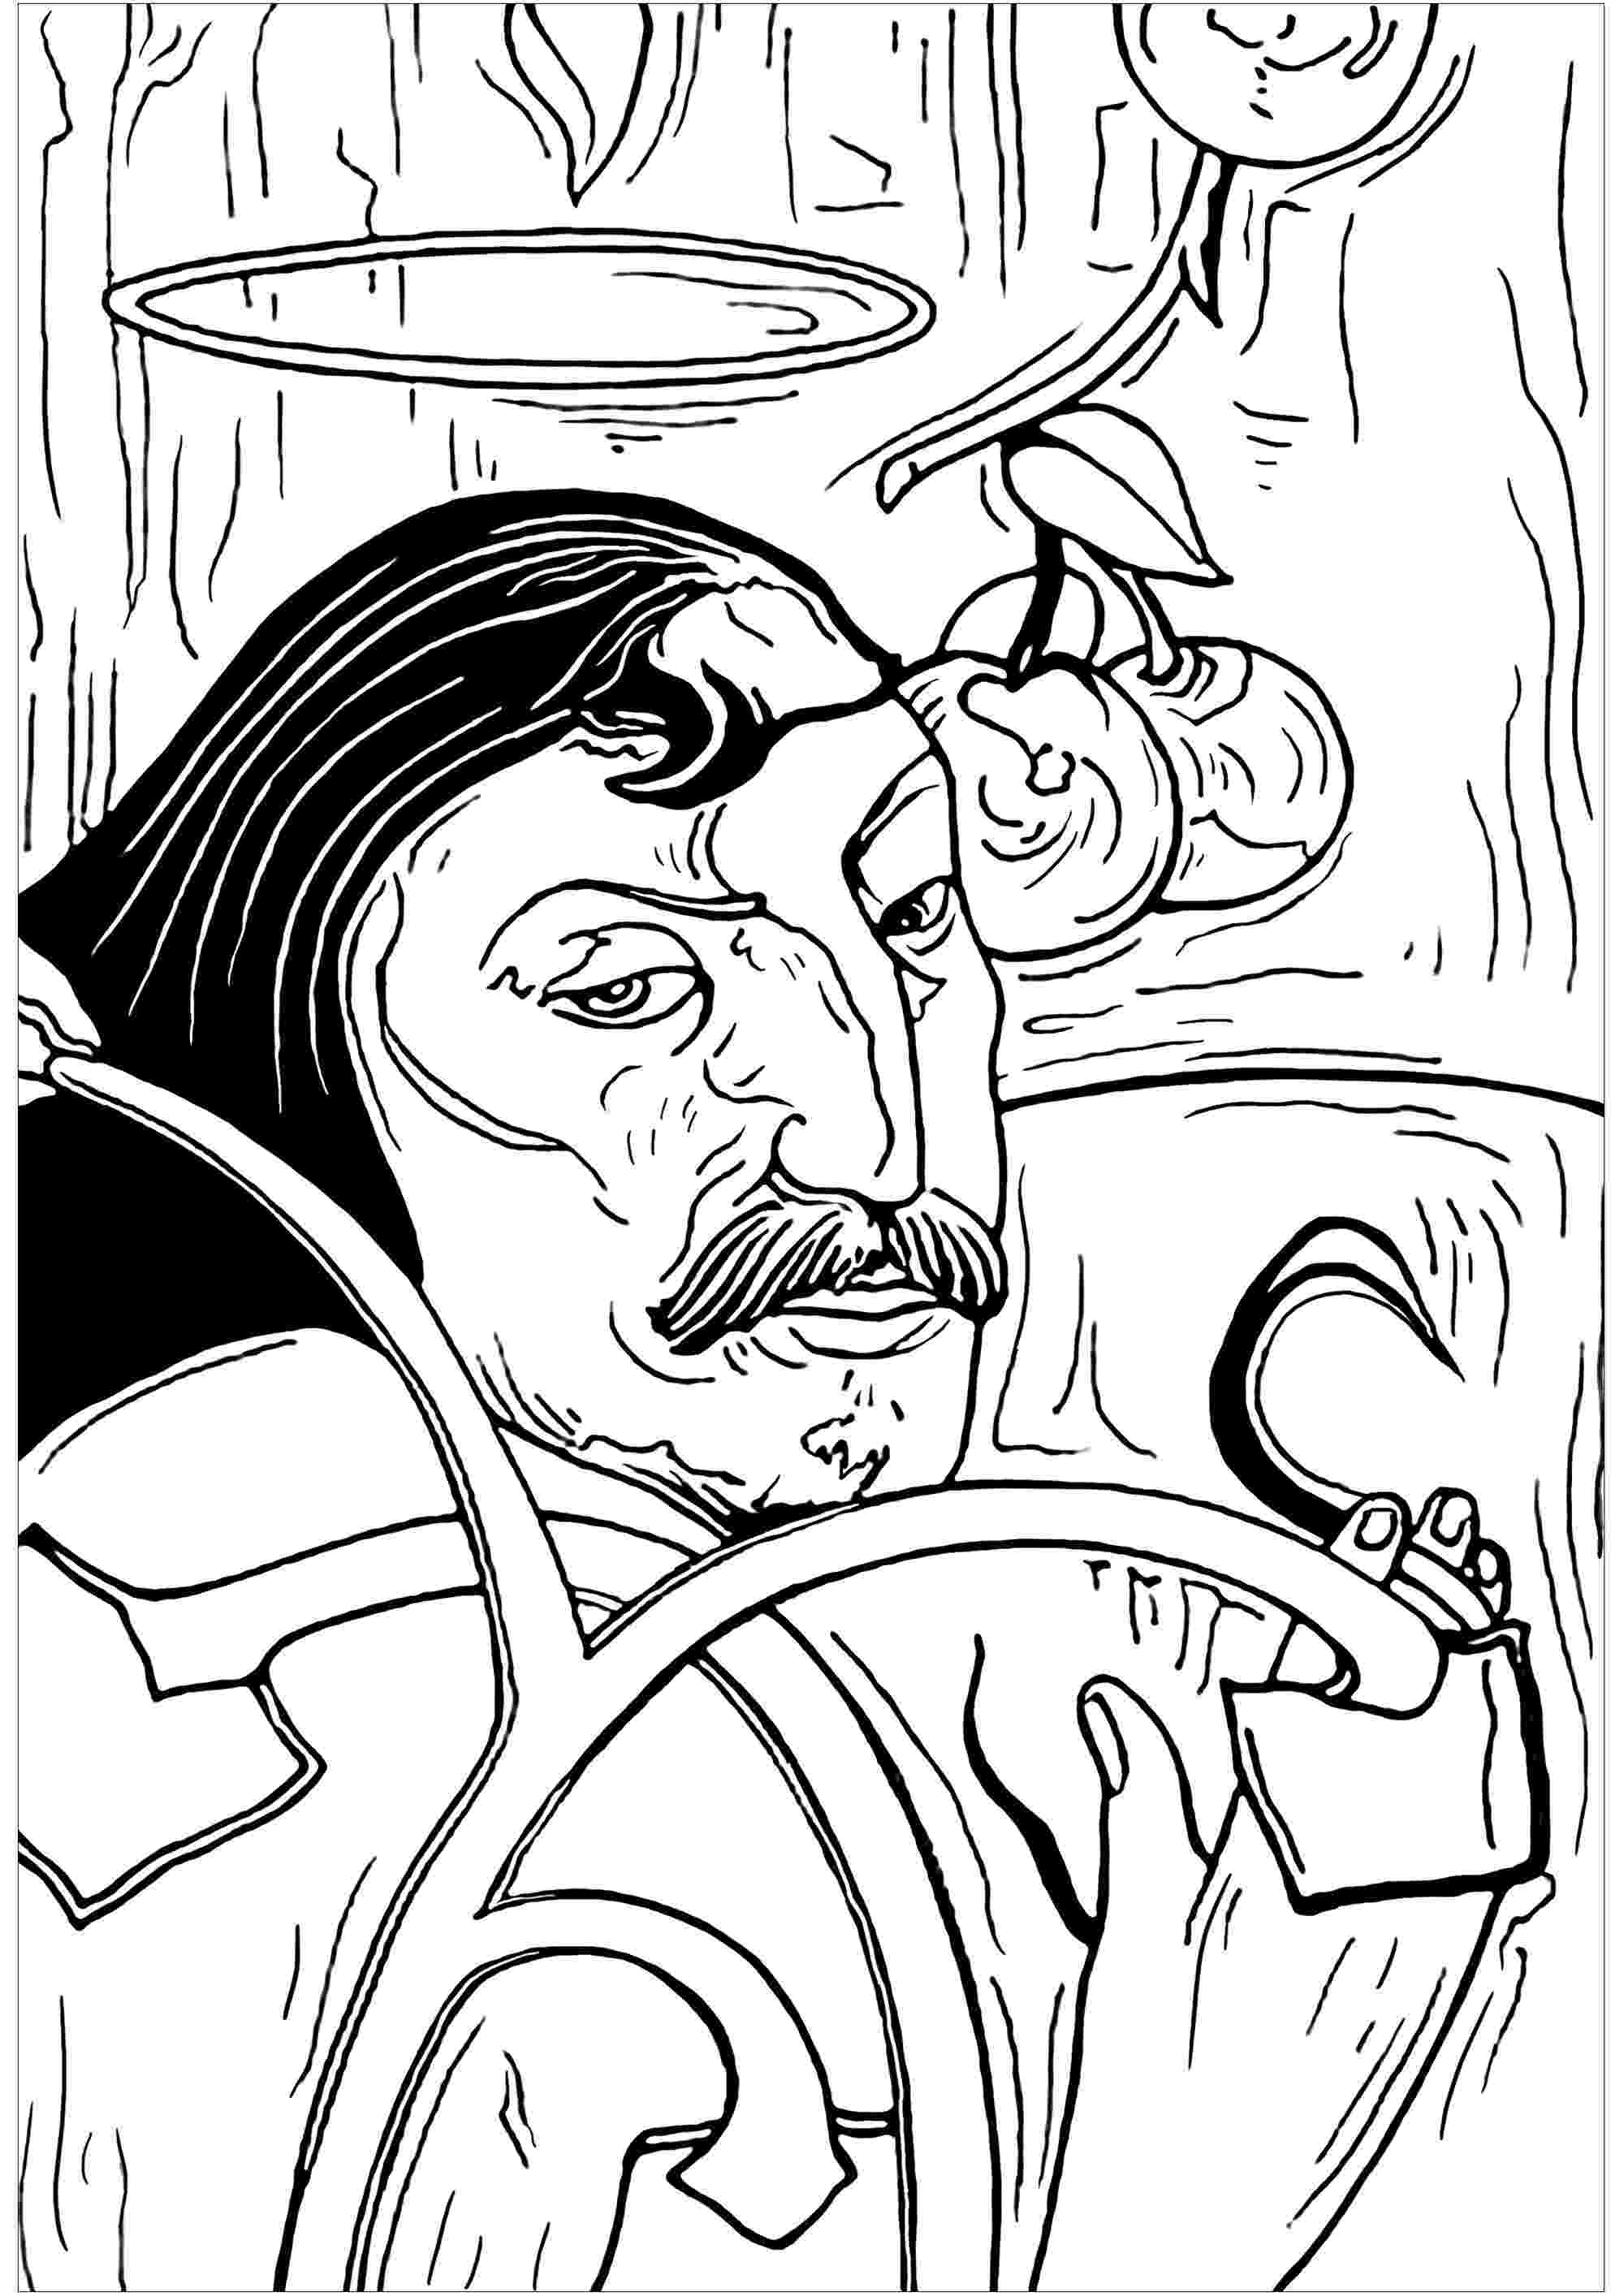 coloring book artist painter coloring page coloring pages coloring book artist